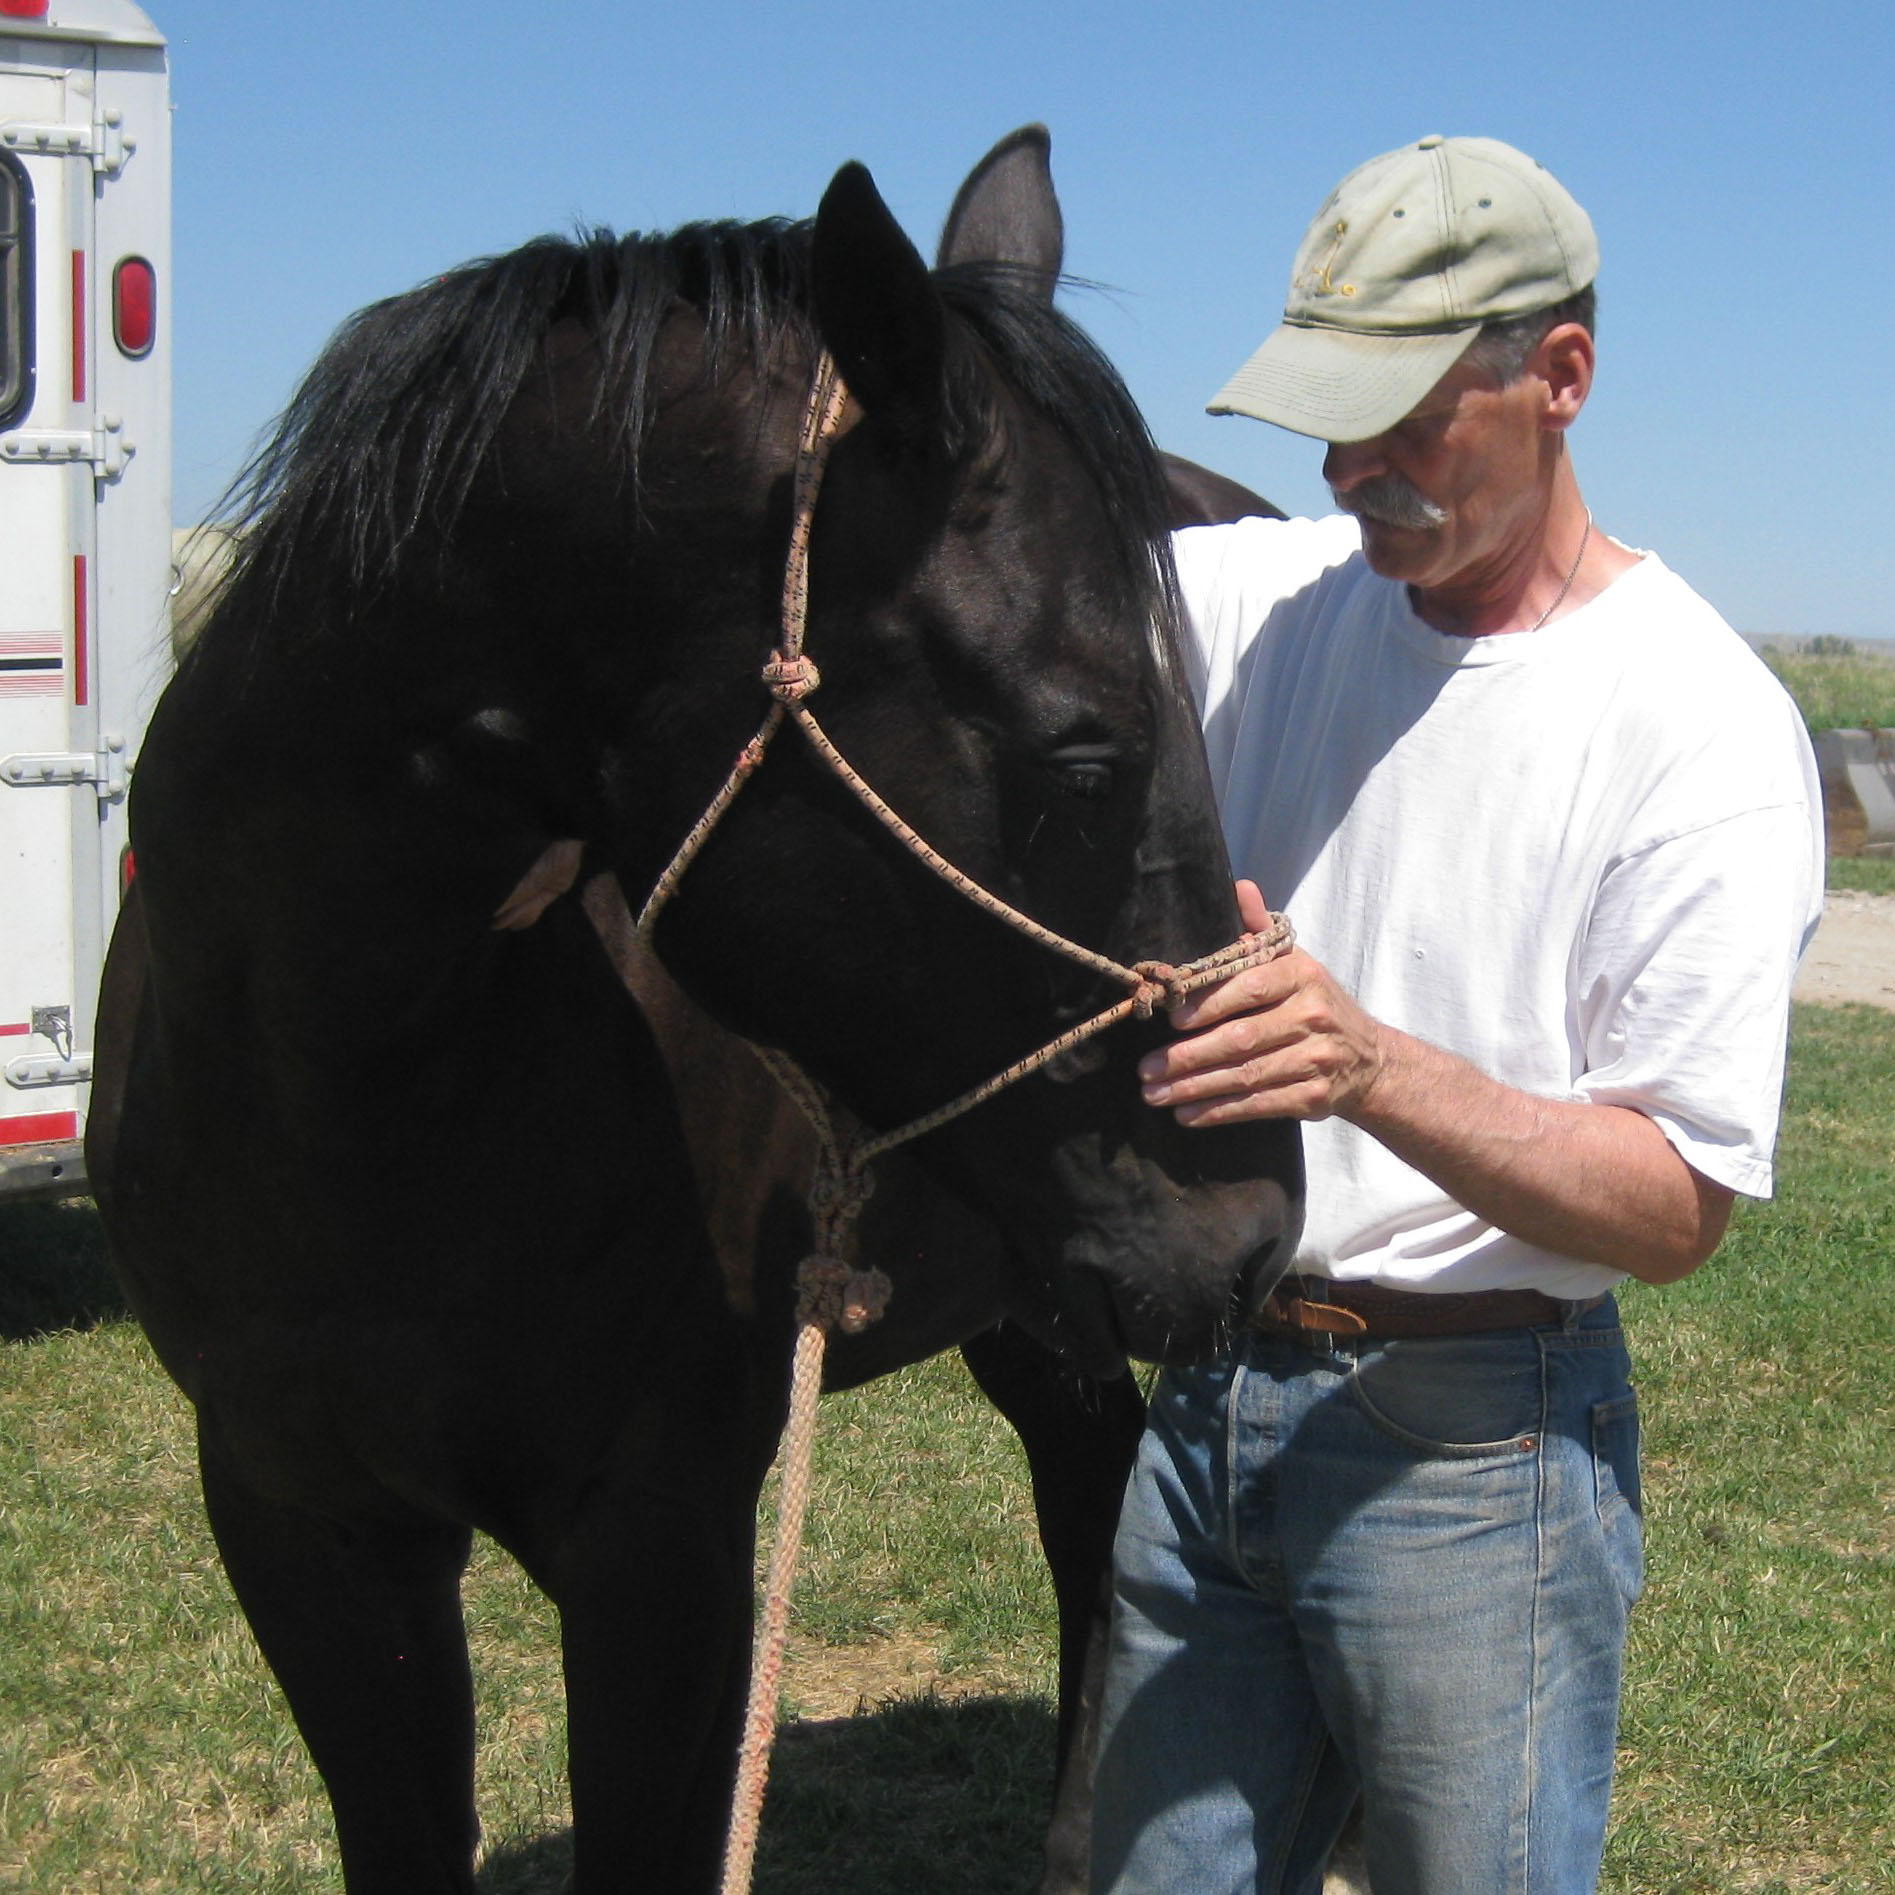 lee-lofgren-equine-and-canine-chiropractic-care-work-3